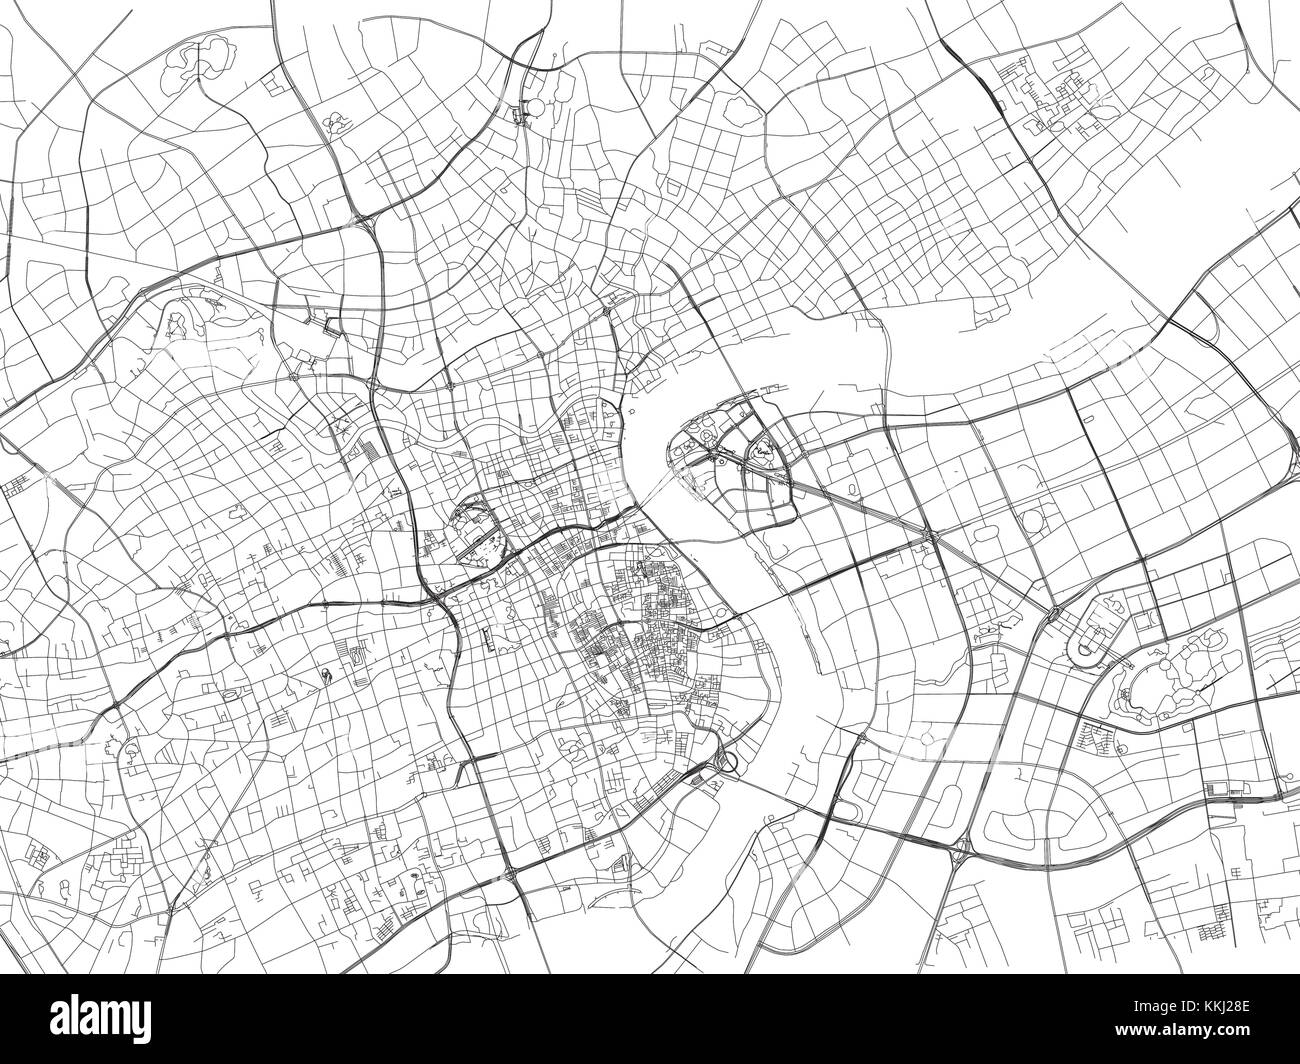 Image of: Shanghai Street City Map China Roads Stock Vector Image Art Alamy